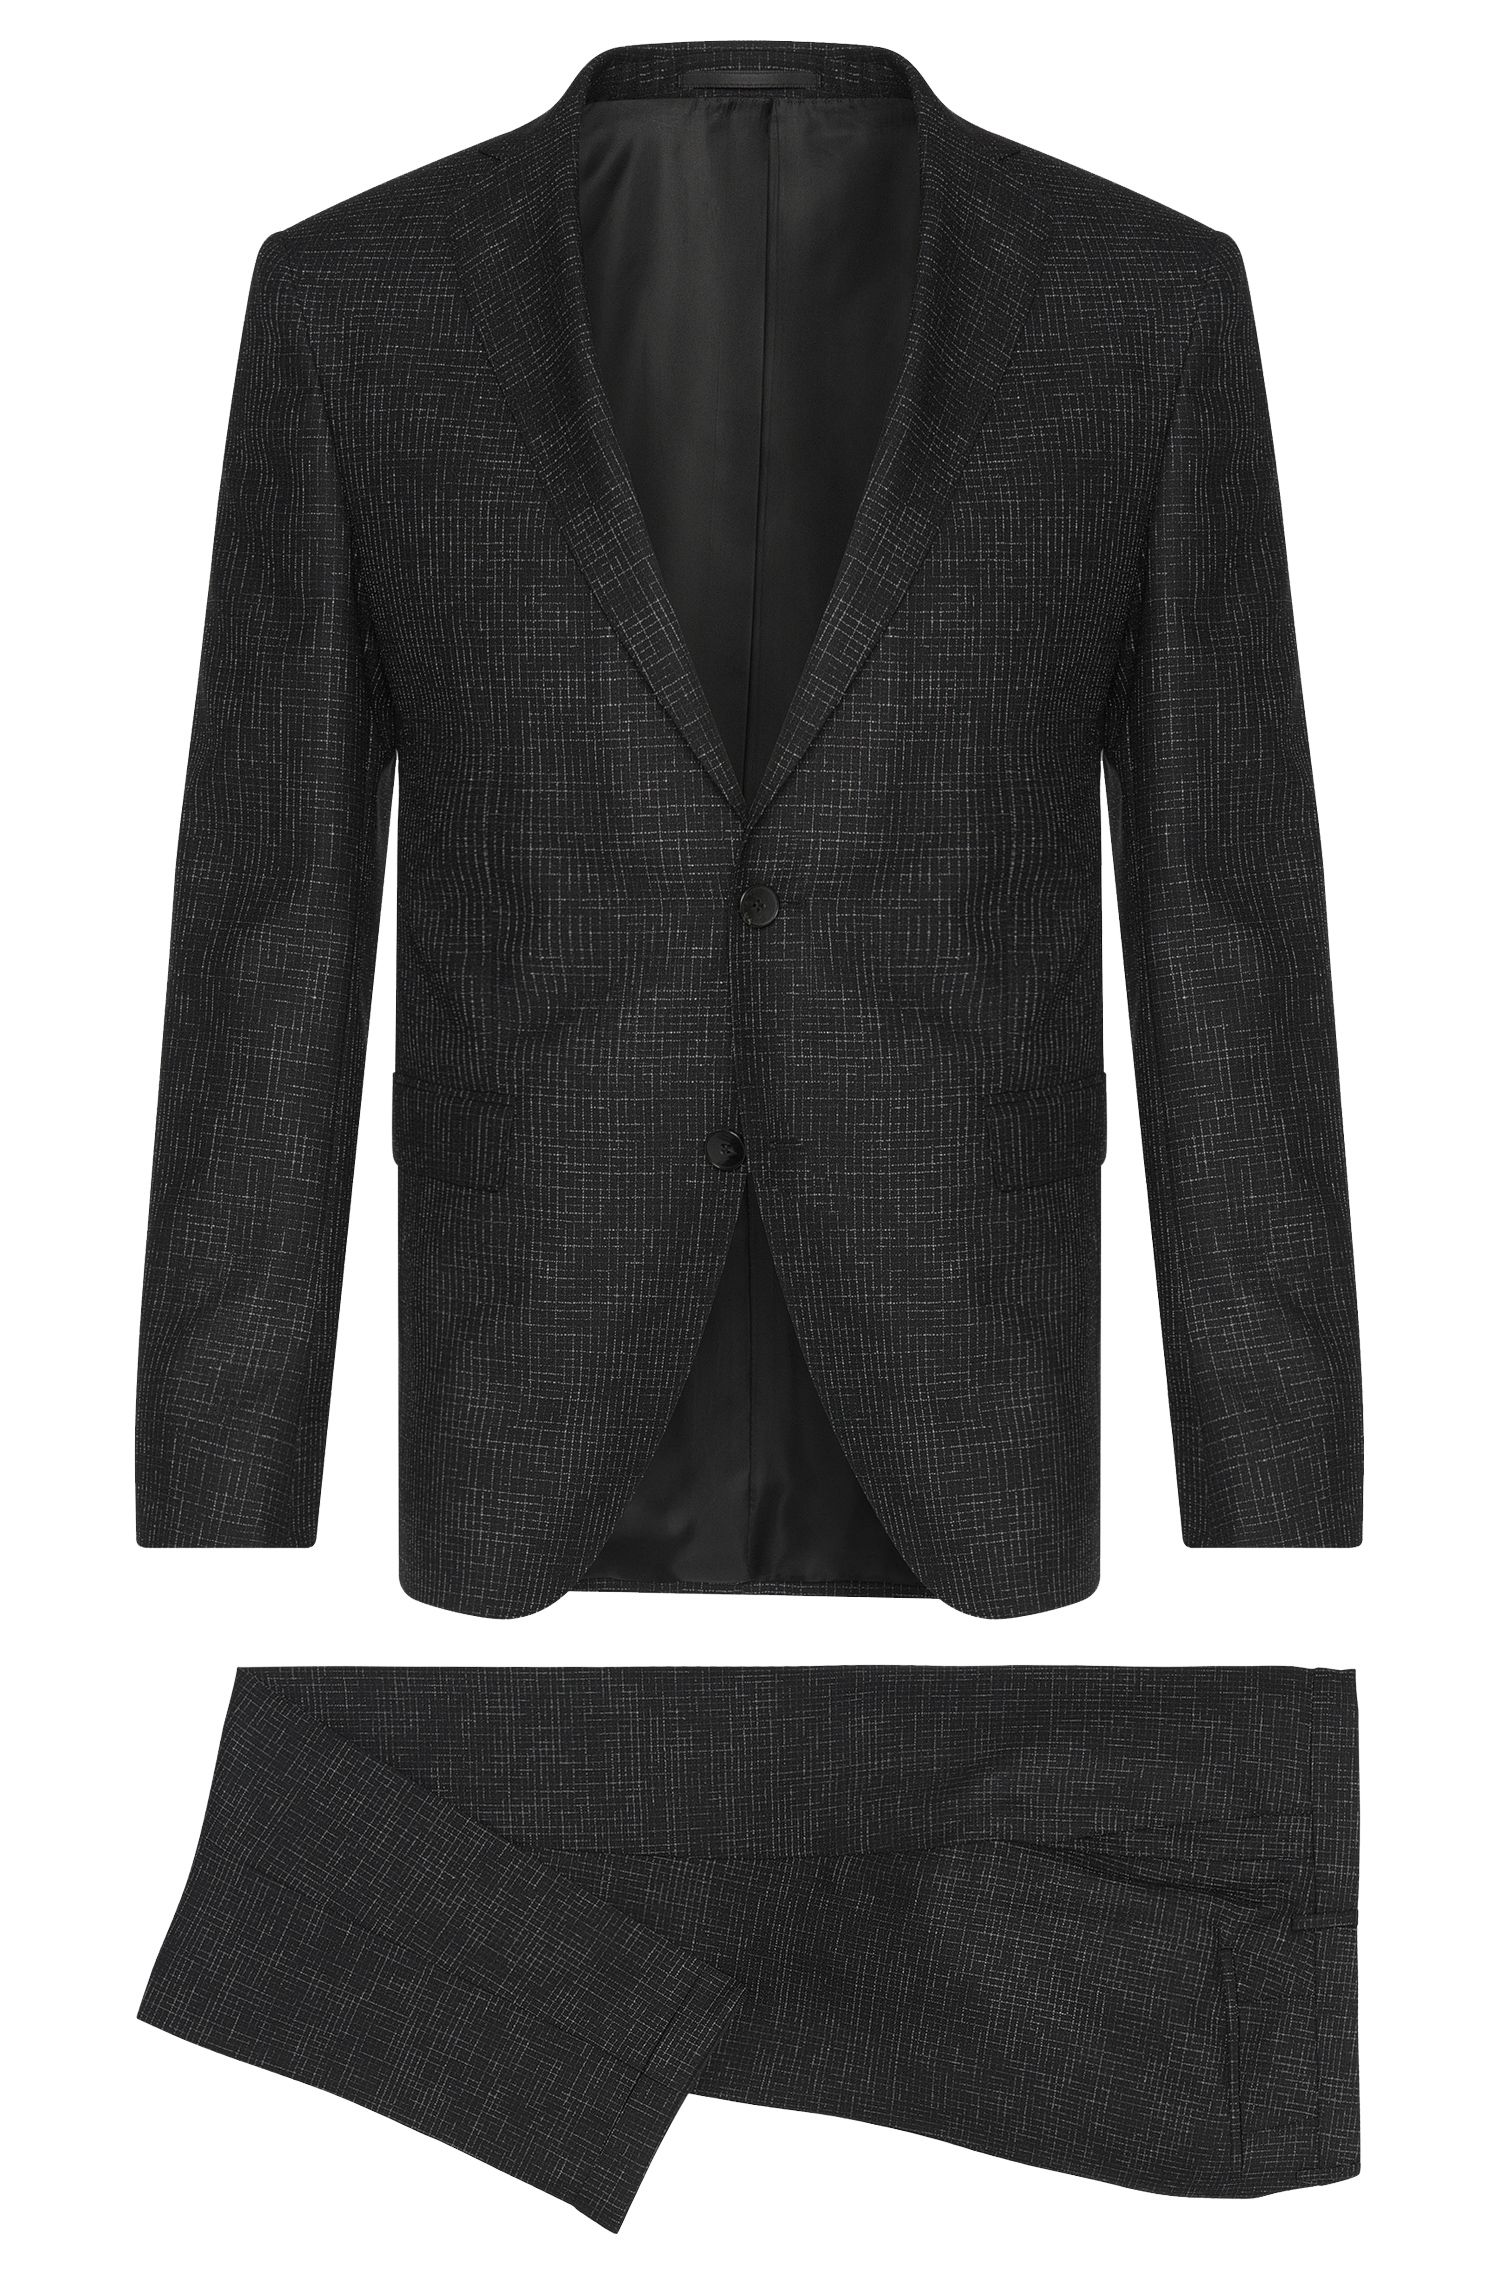 Metallic Super 100 Italian Virgin Wool Suit, Extra-Slim Fit | Reyno/Wave